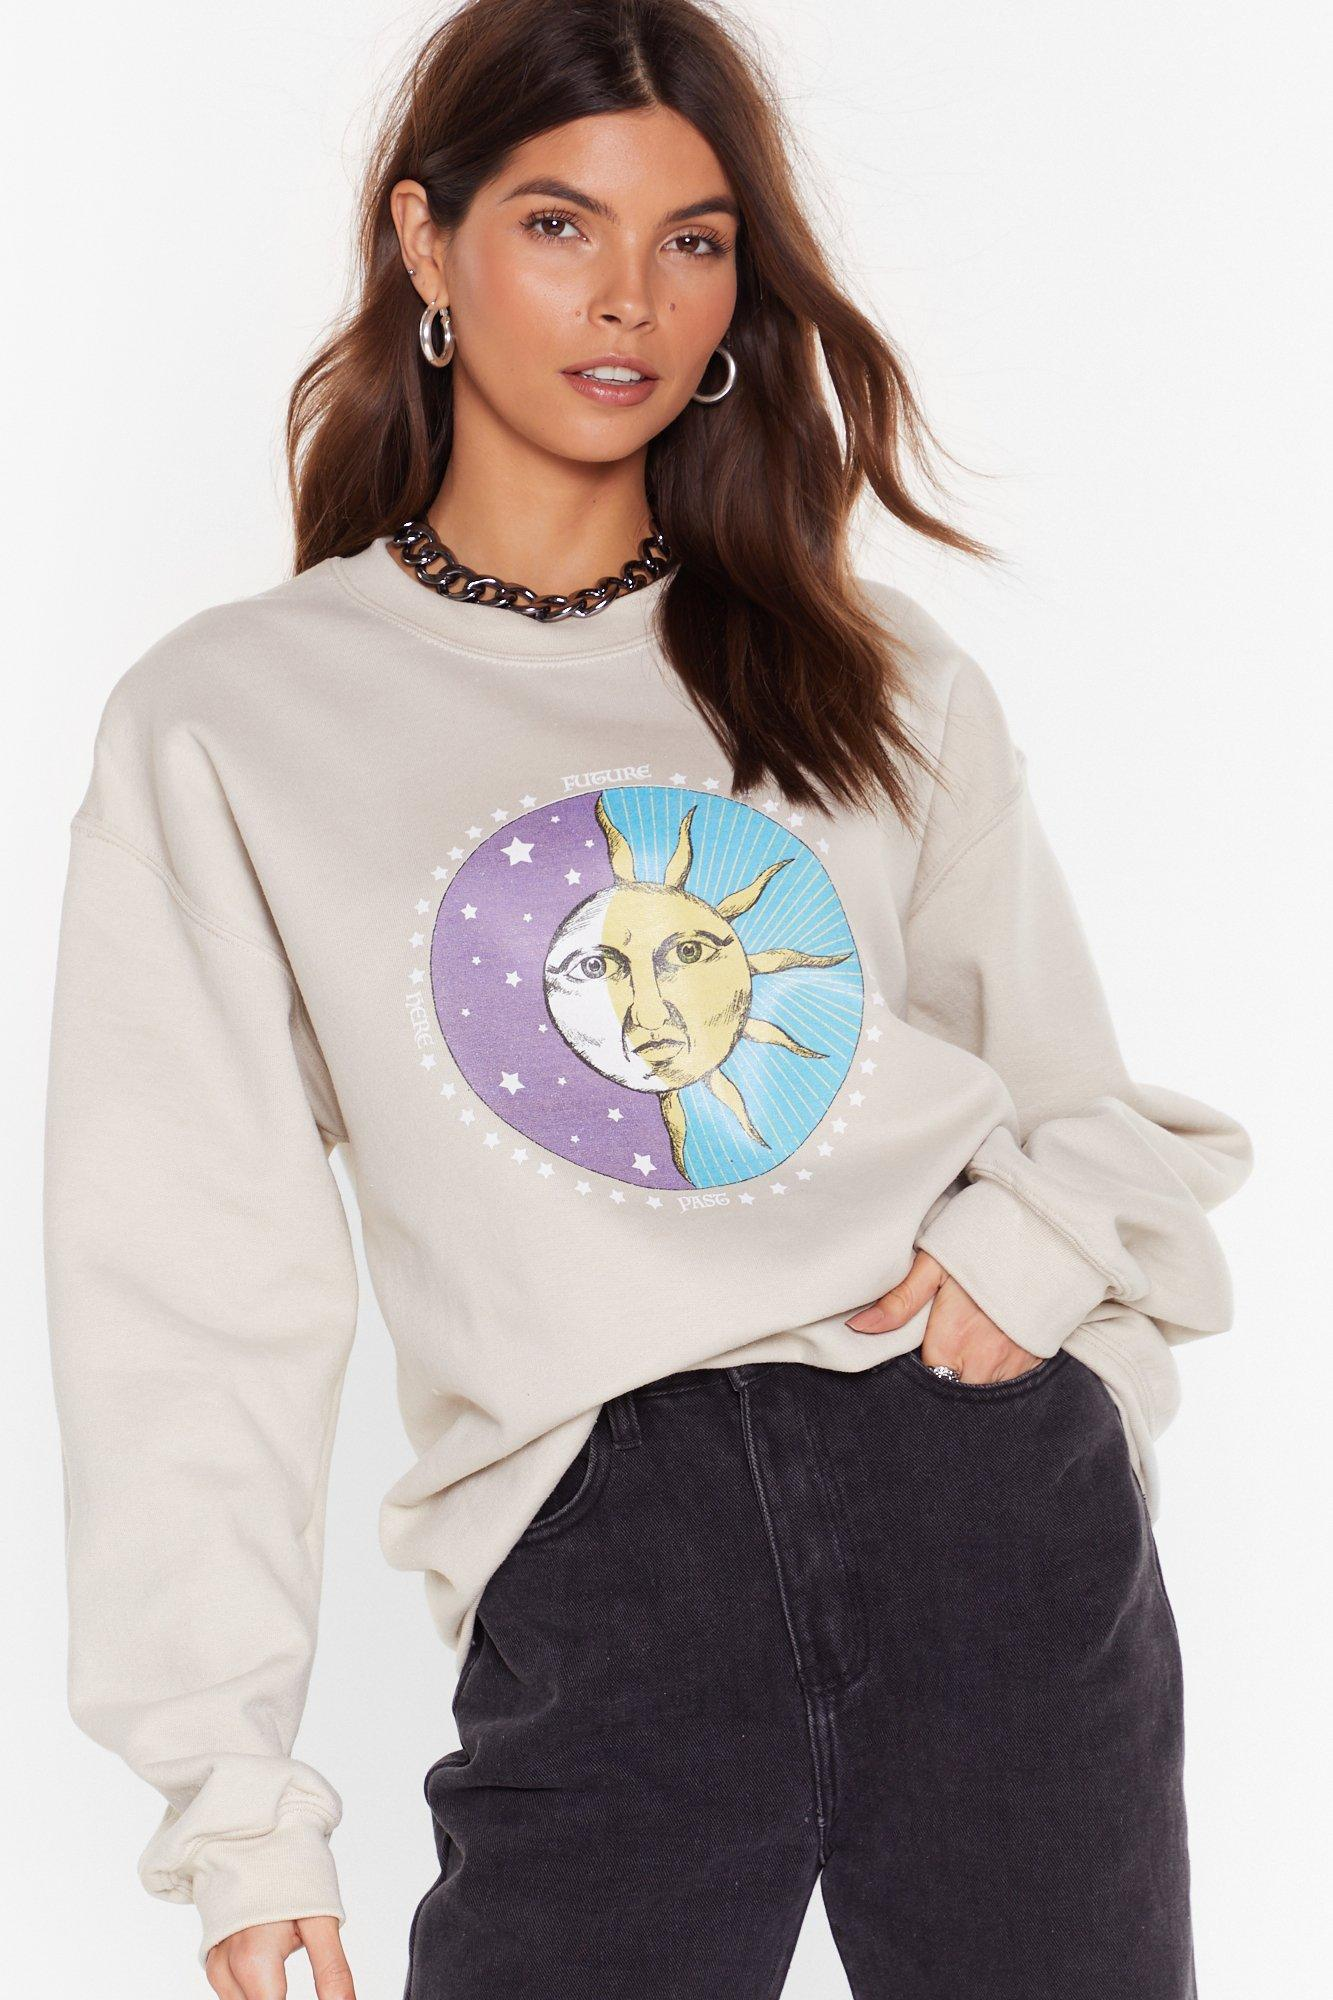 Image of Celestial Being Sun and Moon Graphic Sweatshirt